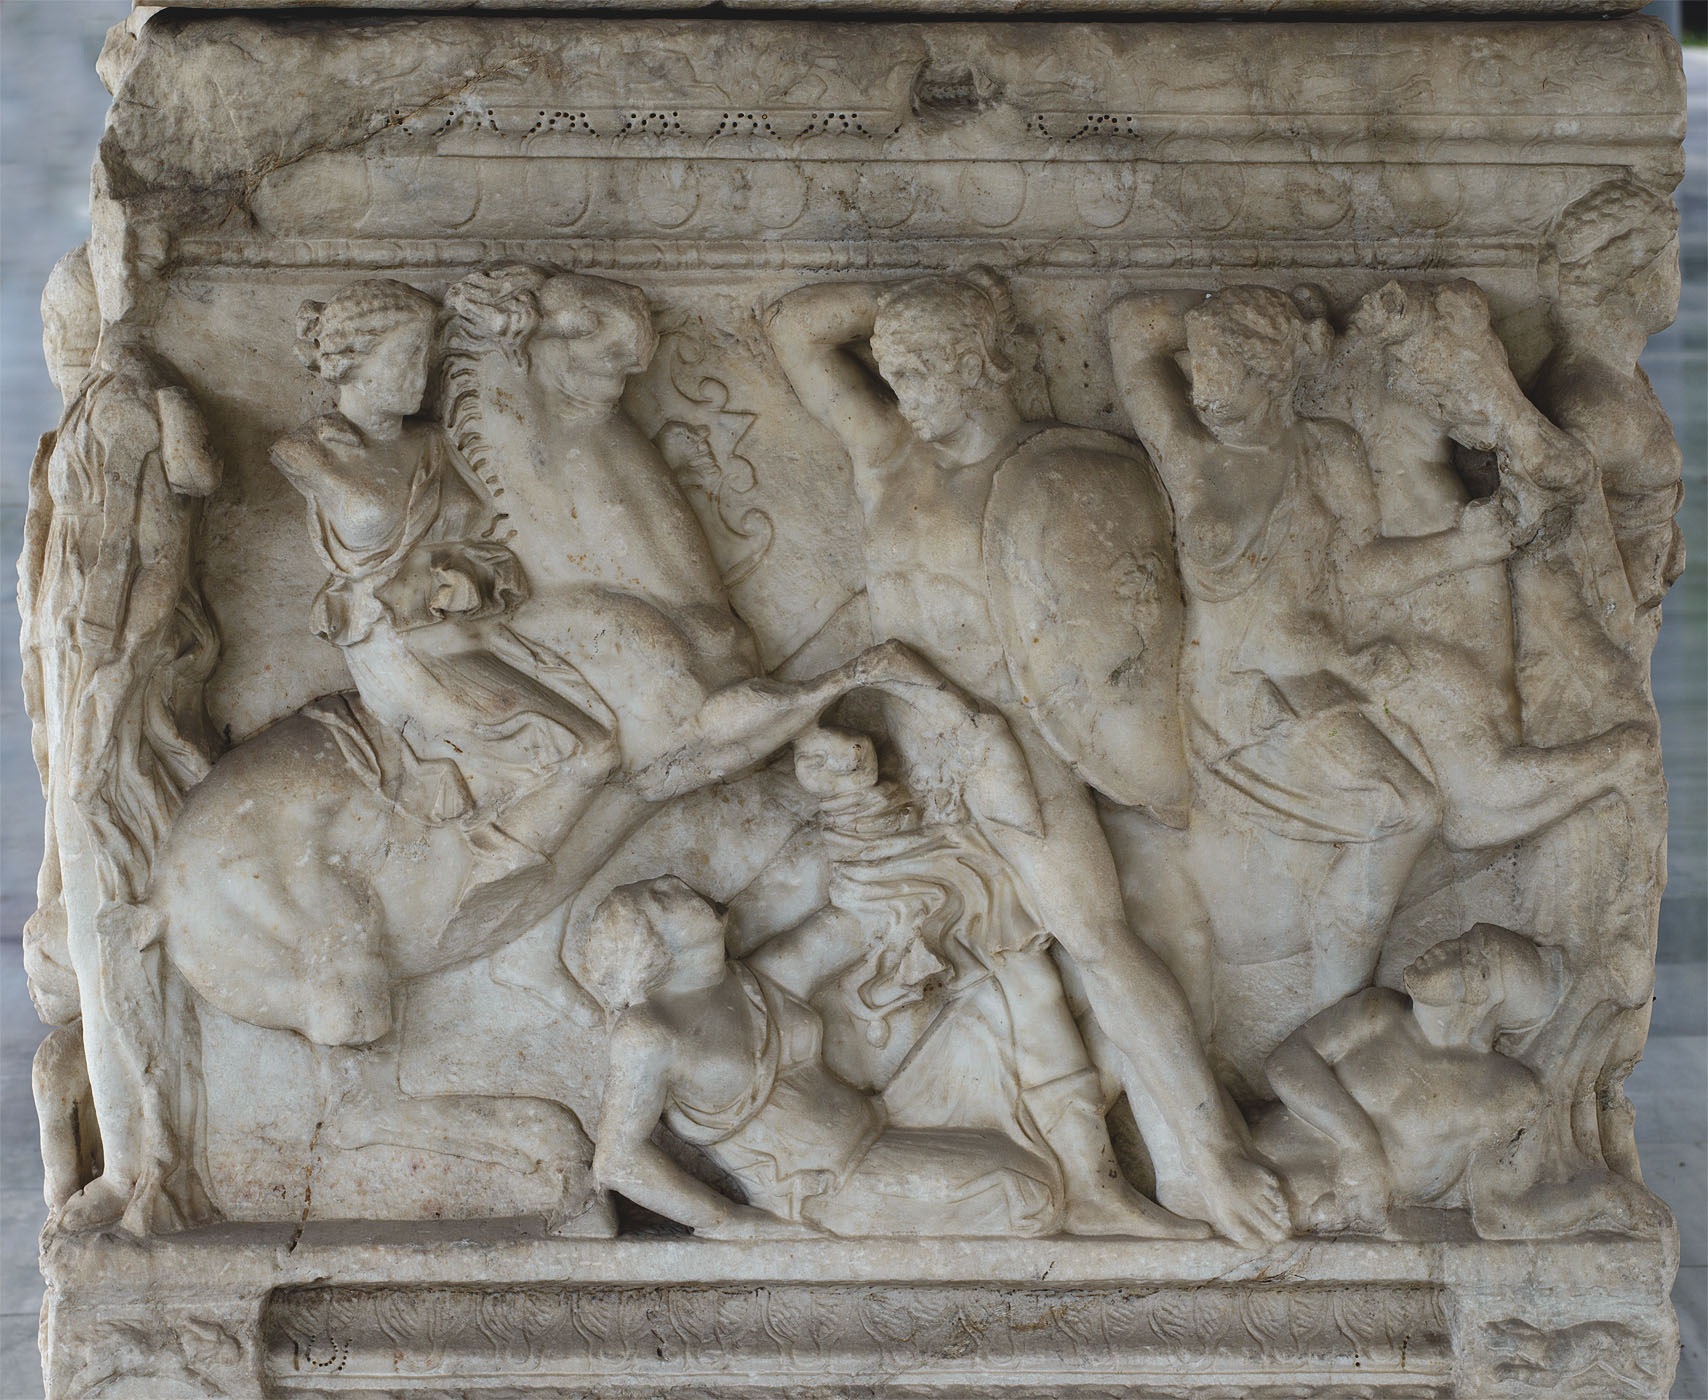 Attic sarcophagus with scenes of battles between the Greeks and the Amazons (the left short side panel). Marble. 220—230 CE. Thessaloniki, Archaeological Museum